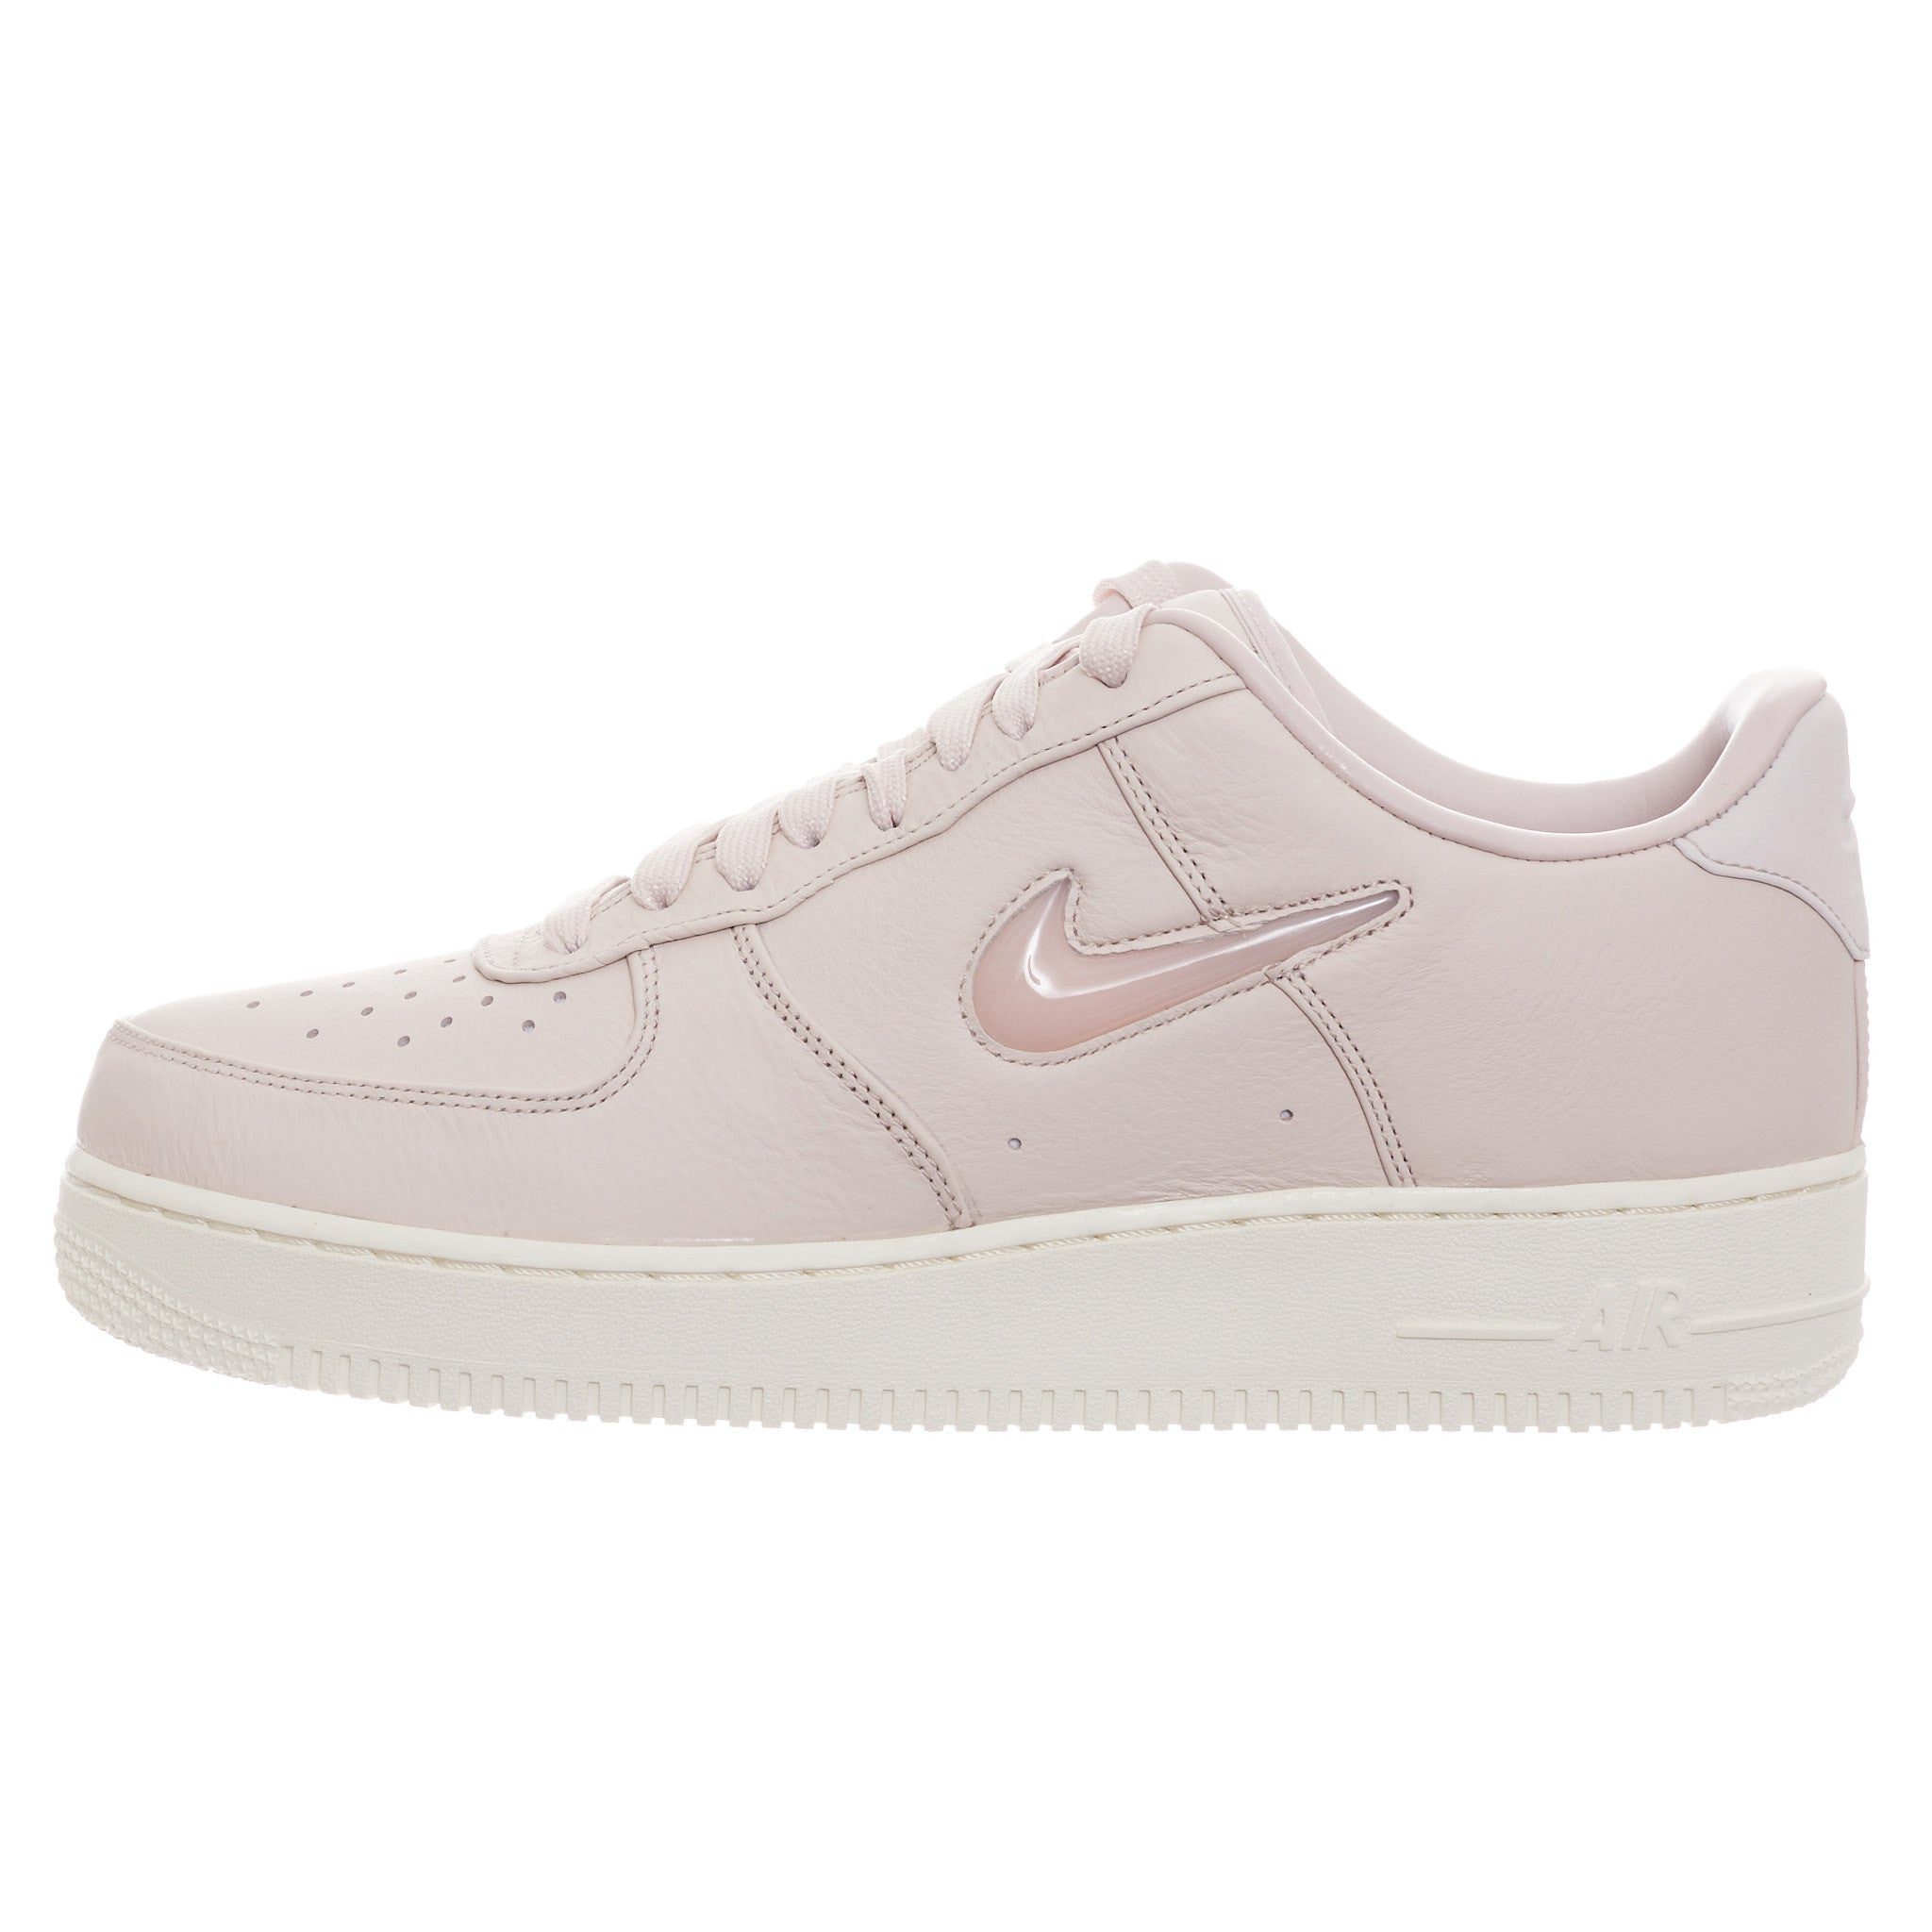 Air Force 1 Premium Retro